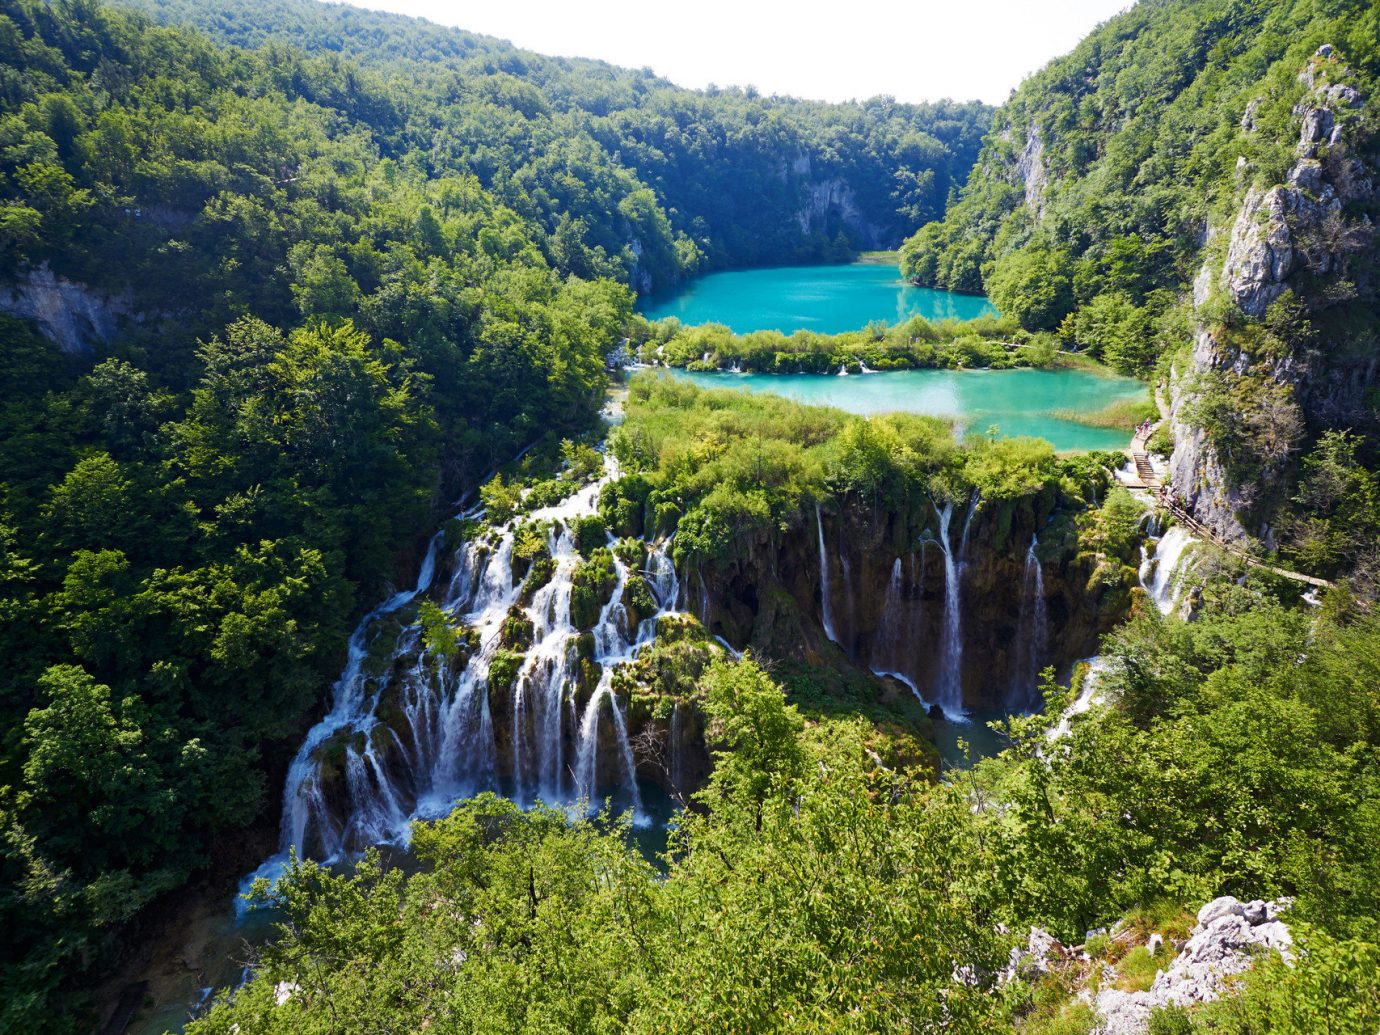 Croatia Eastern Europe europe Montenegro Slovenia Trip Ideas tree outdoor mountain Waterfall body of water Nature River water feature Forest park fjord Lake rainforest reservoir national park hillside wooded surrounded lush